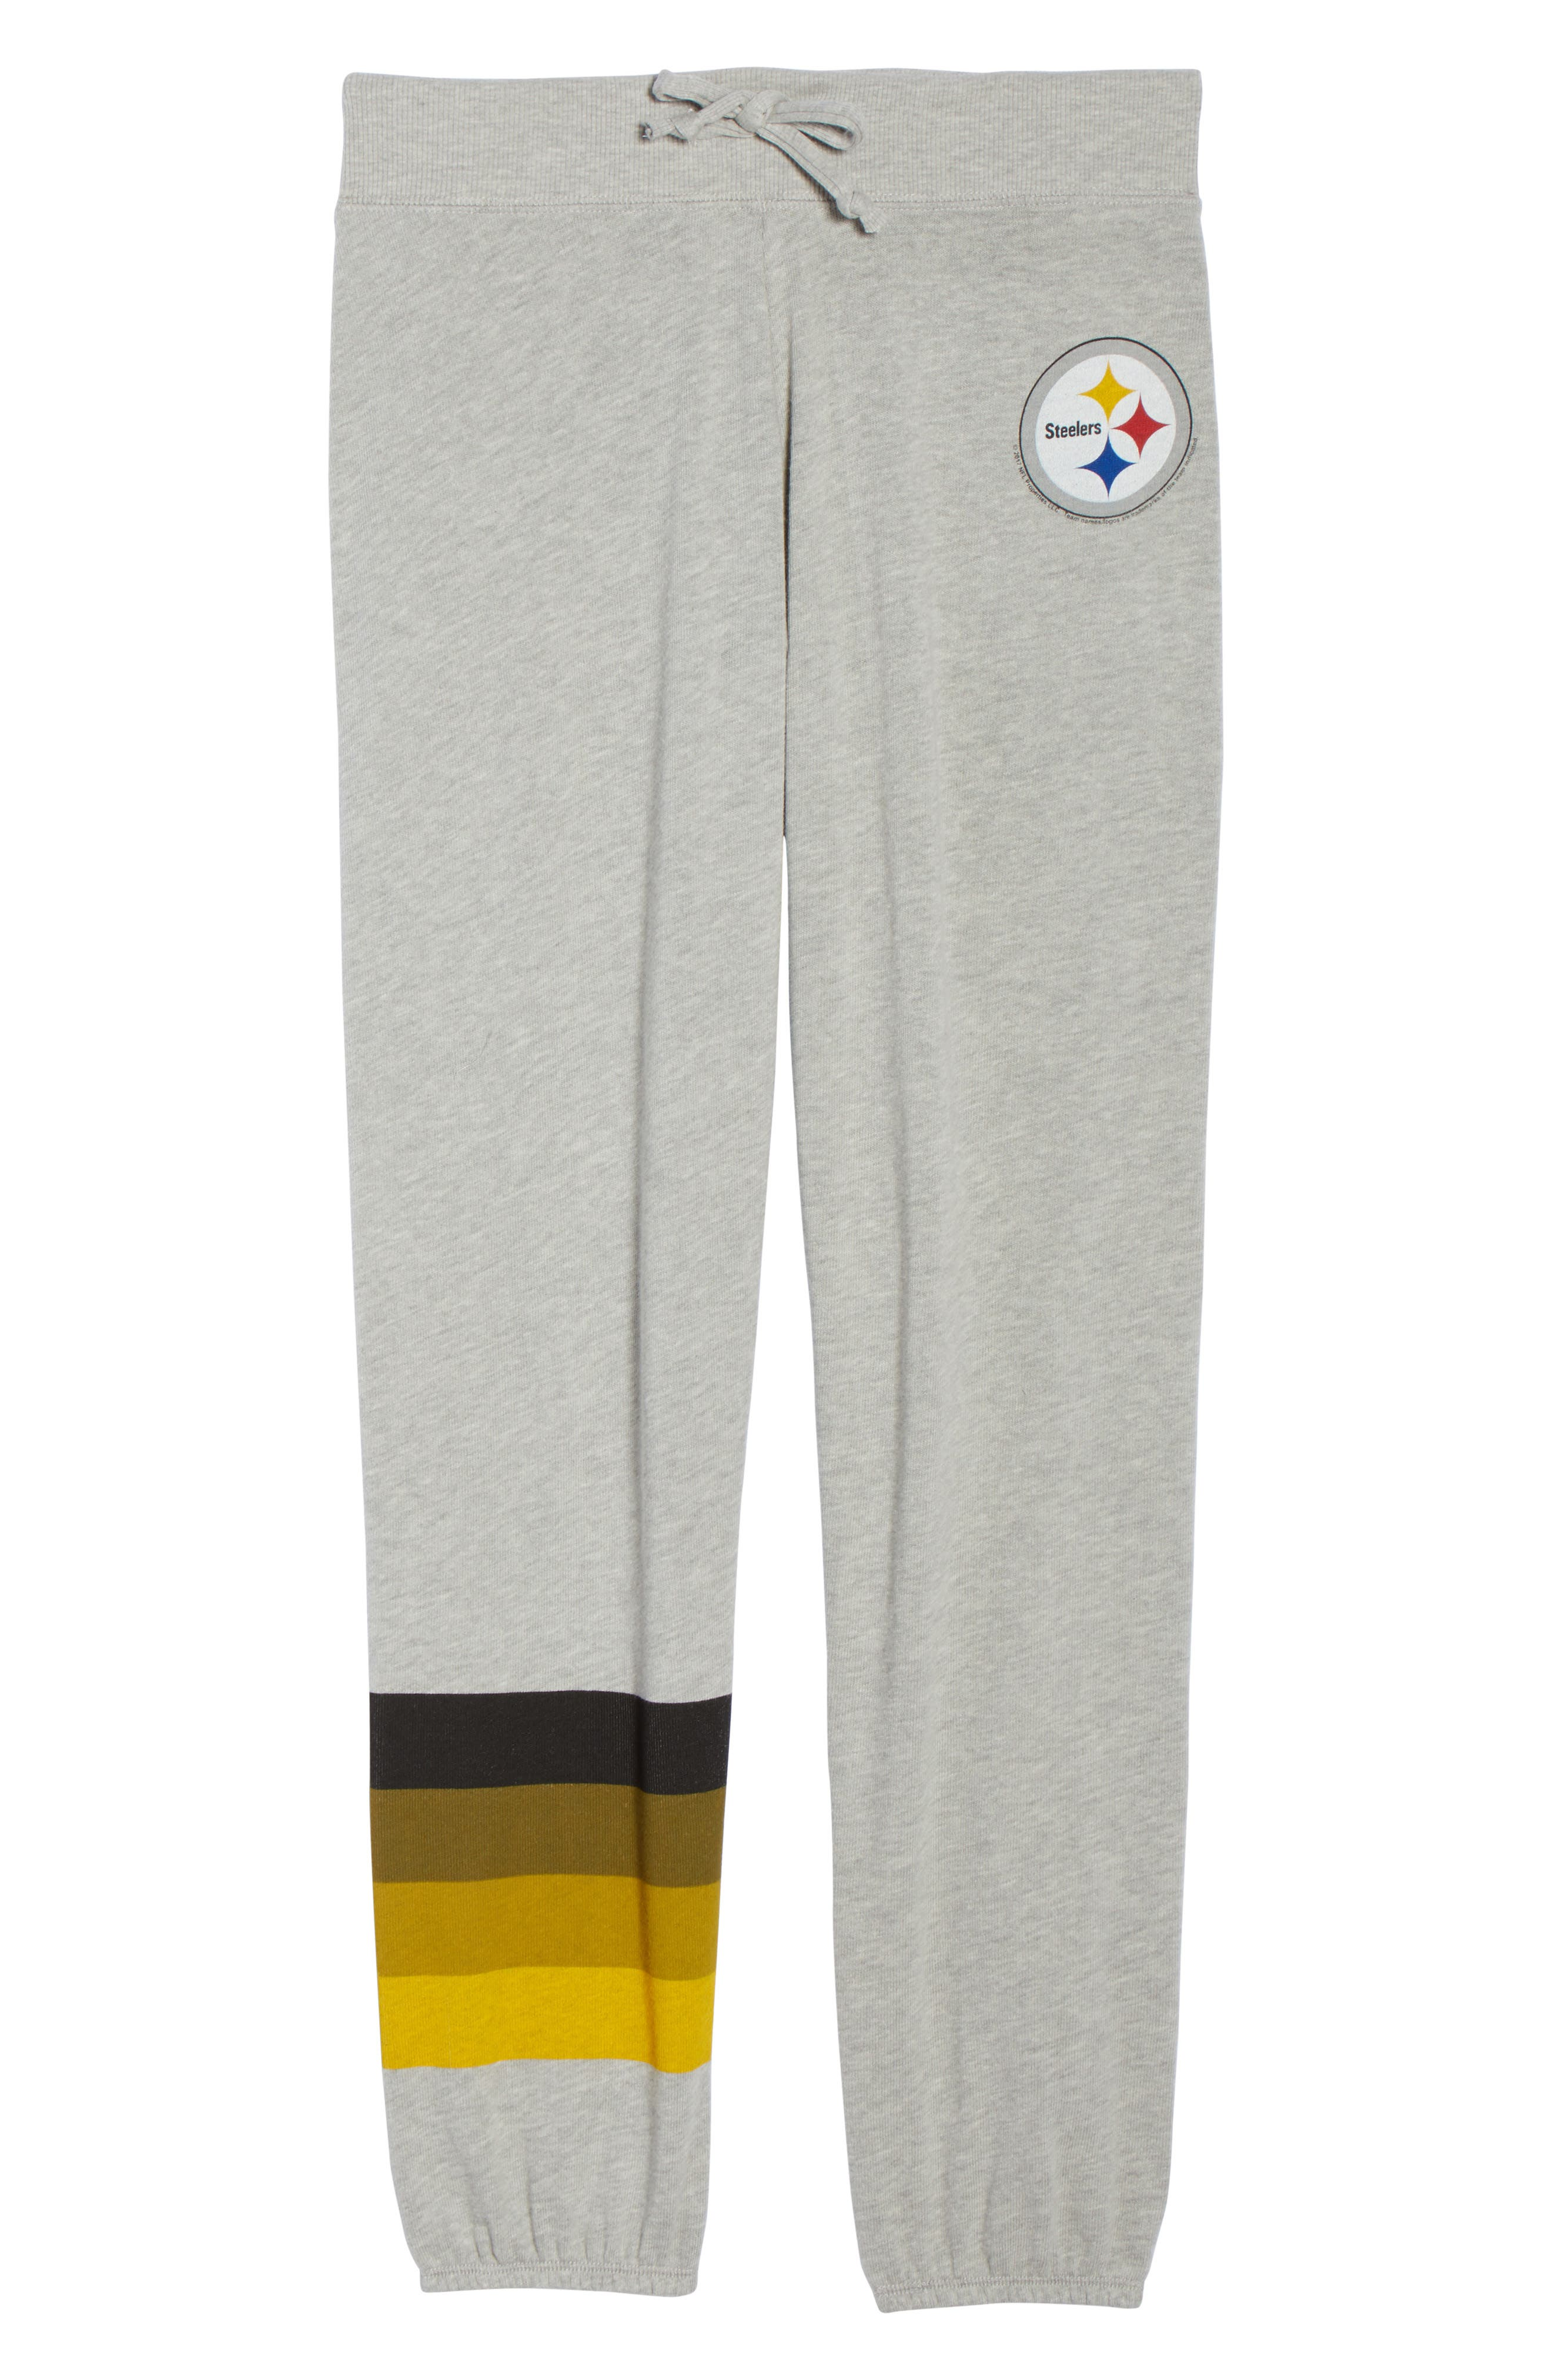 NFL Pittsburgh Steelers Hacci Sweatpants,                             Alternate thumbnail 7, color,                             Dove Heather Grey